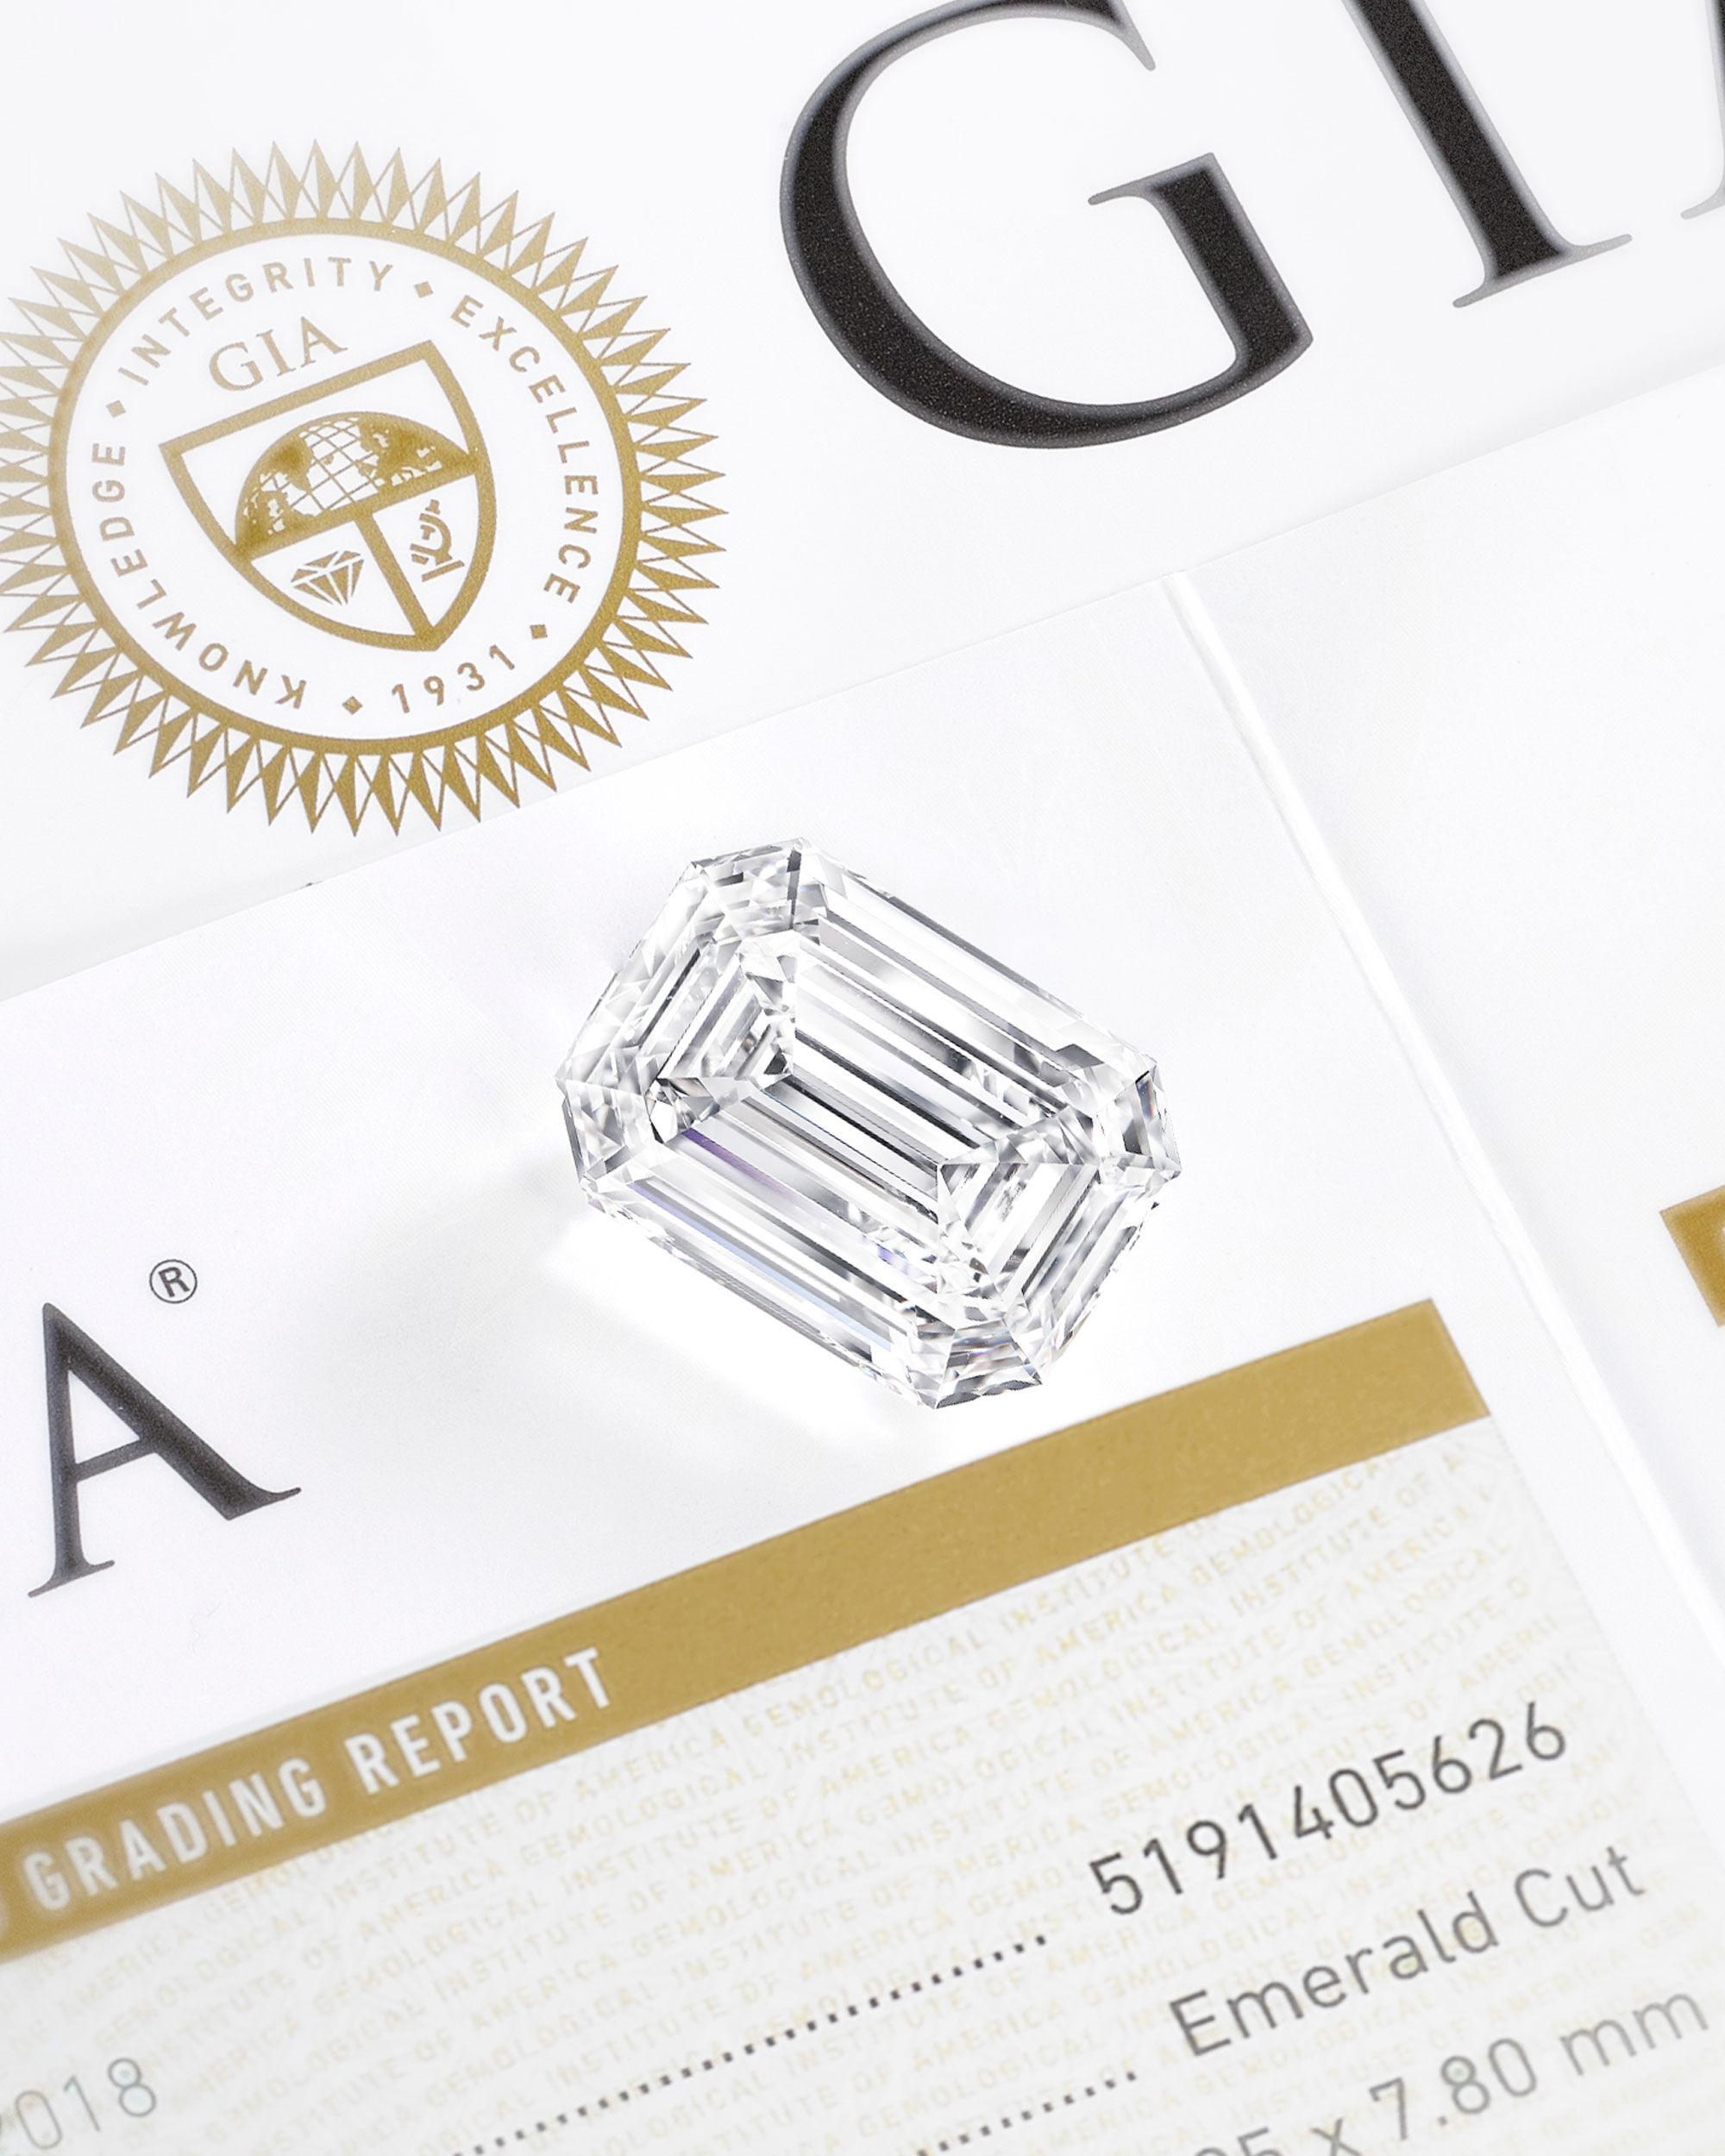 Close up of a Graff emerald cut diamond on a GIA certificate